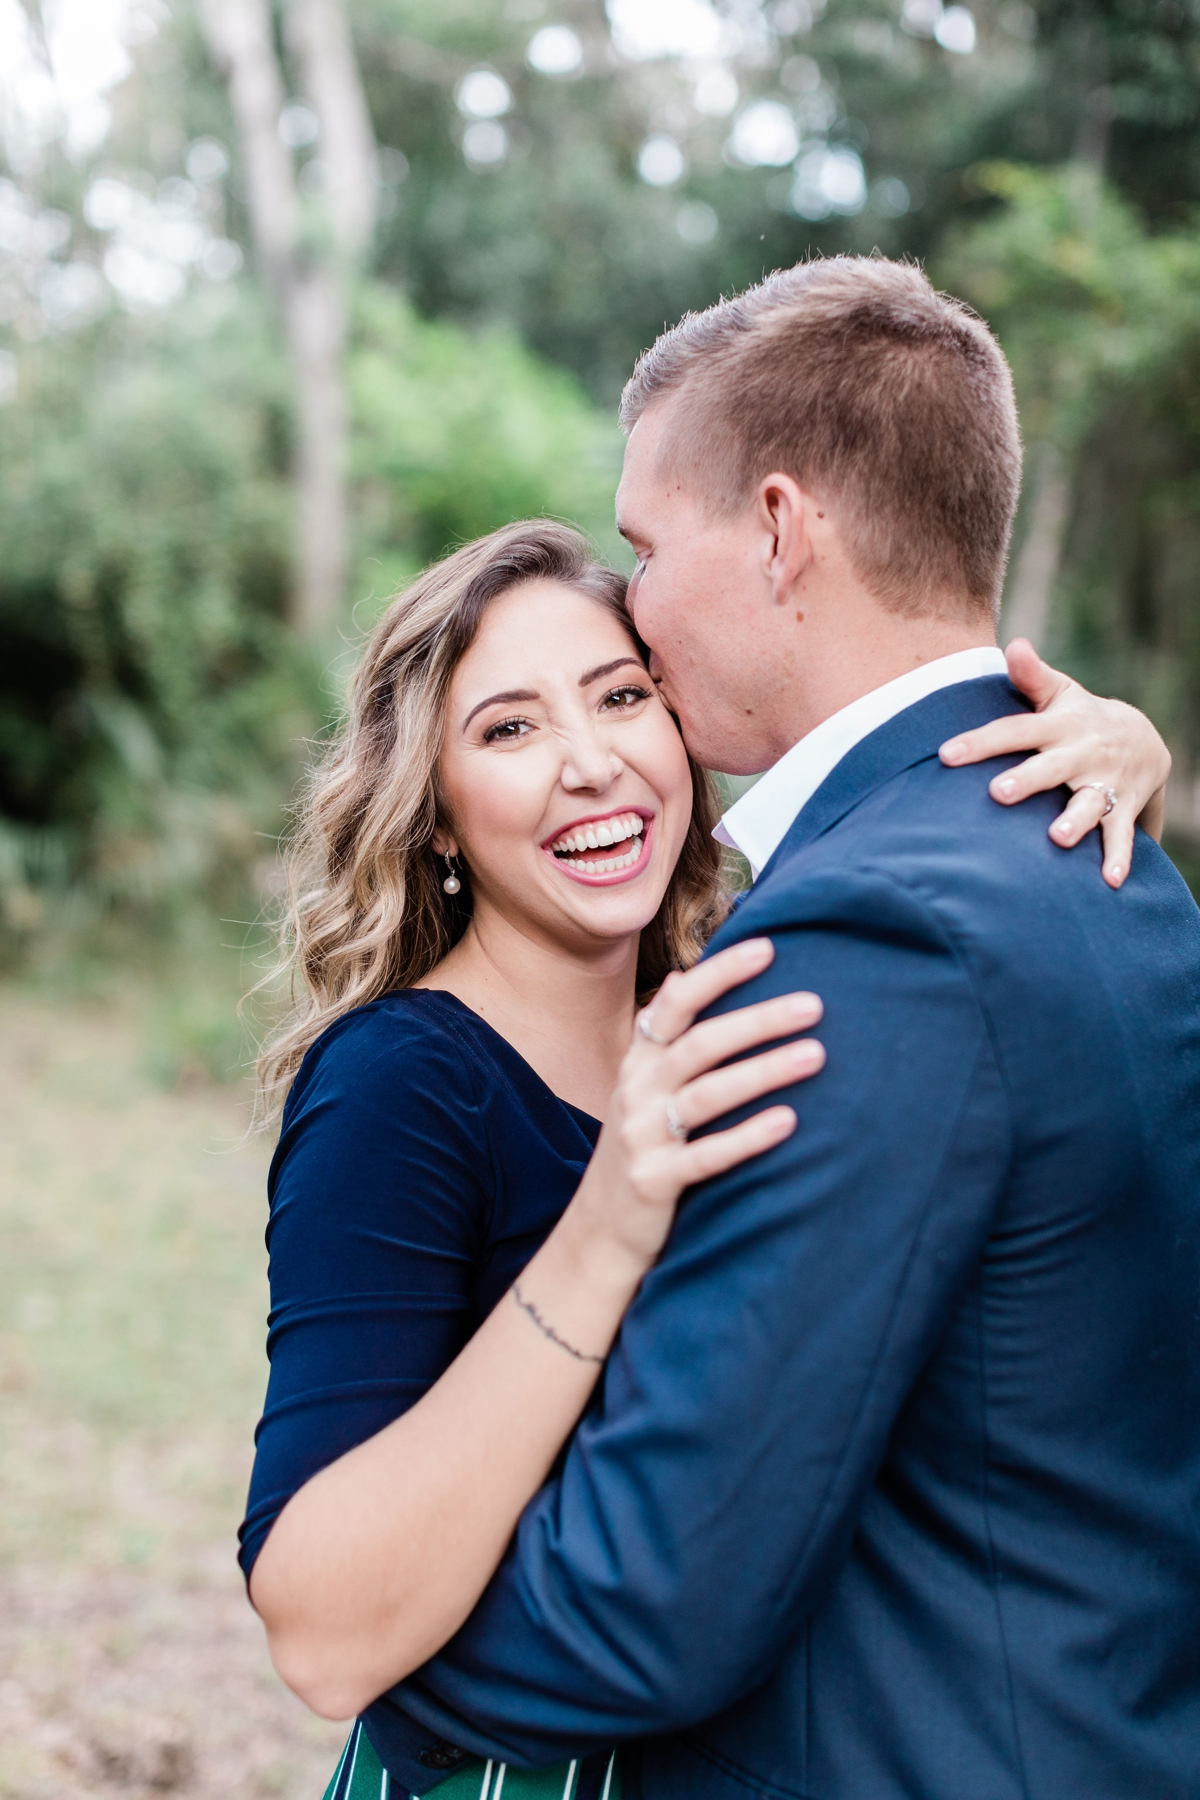 Green and blue engagement outfit at Wormsloe Engagement Session - Savannah Engagement Photographer